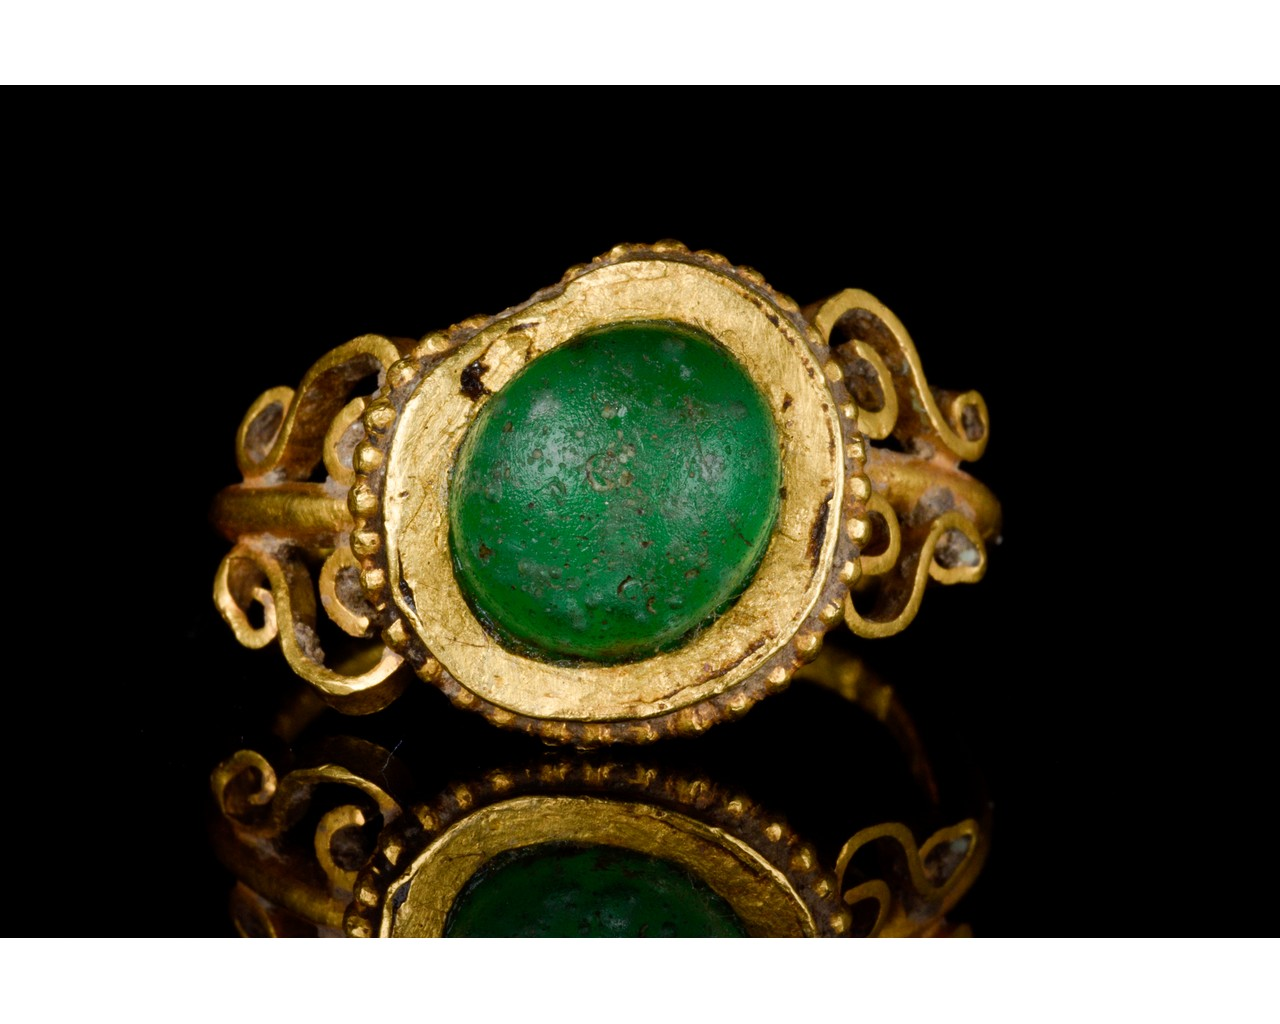 LATE ROMAN GOLD AND GLASS RING - EX CHRISTIE'S - FULL ANALYSIS - Image 2 of 8